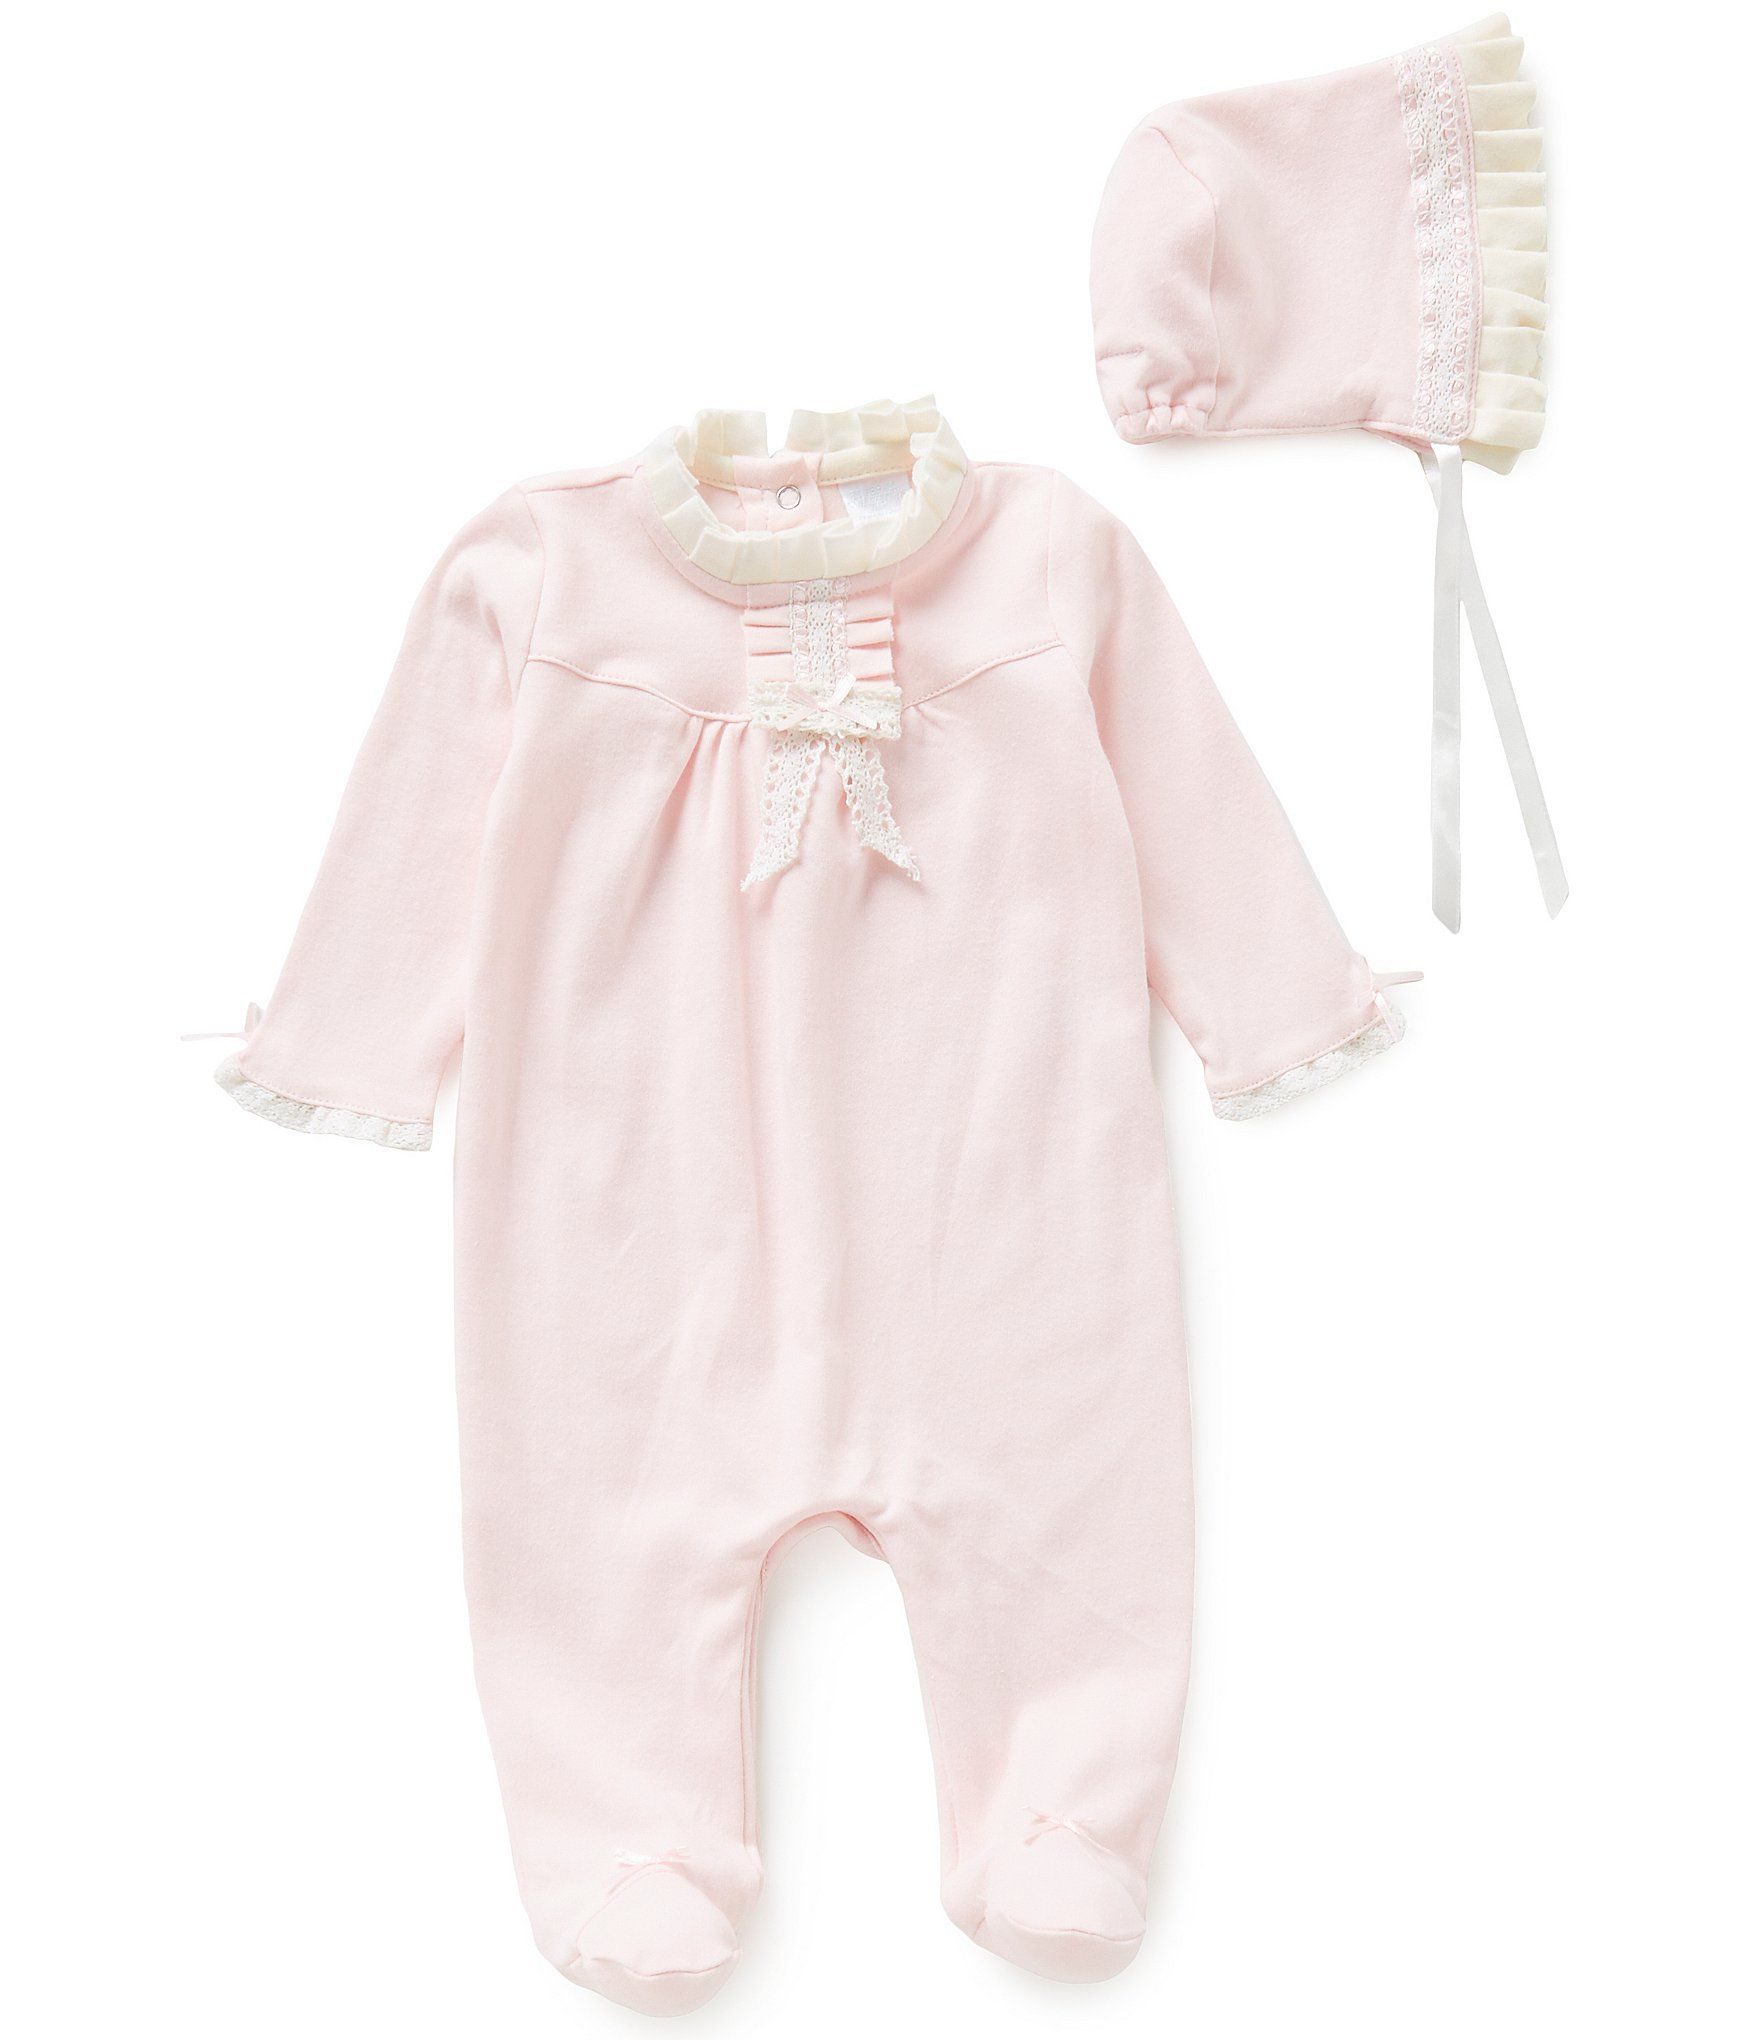 338394c24 Shop for Edgehill Collection Baby Girls Newborn-6 Months Ruffled Coverall &  Bonnet Set at Dillards.com. Visit Dillards.com to find clothing,  accessories, ...